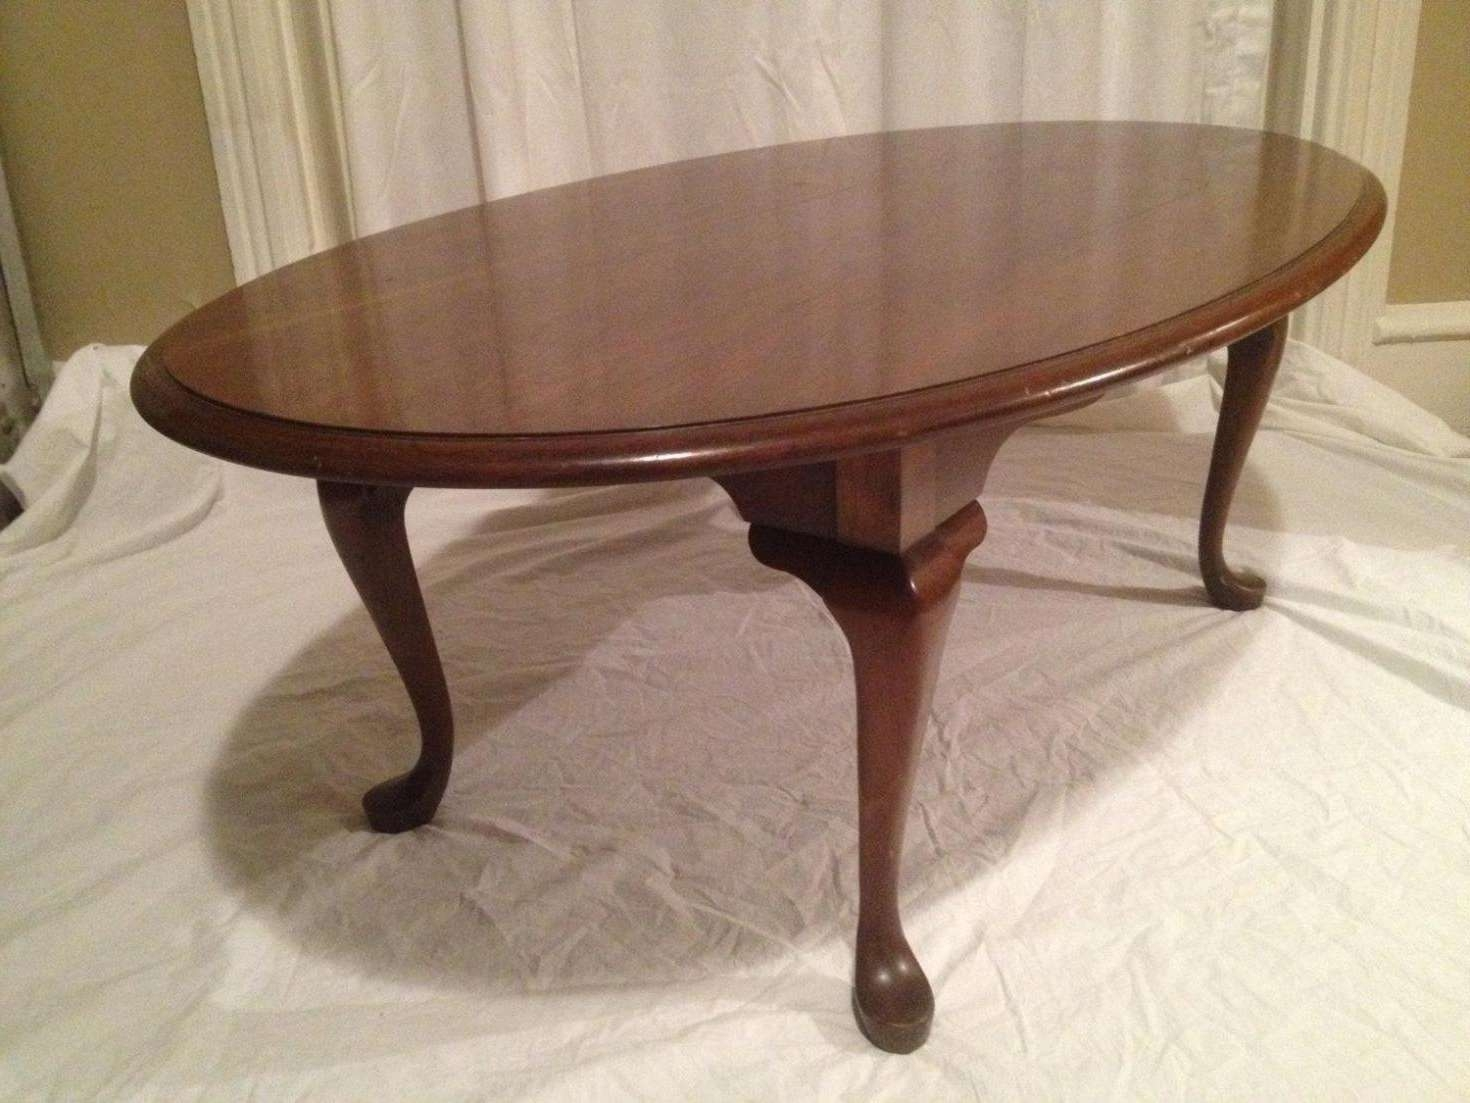 Small Oval Coffee Table Regarding Preferred Oval Wood Coffee Tables (View 17 of 20)